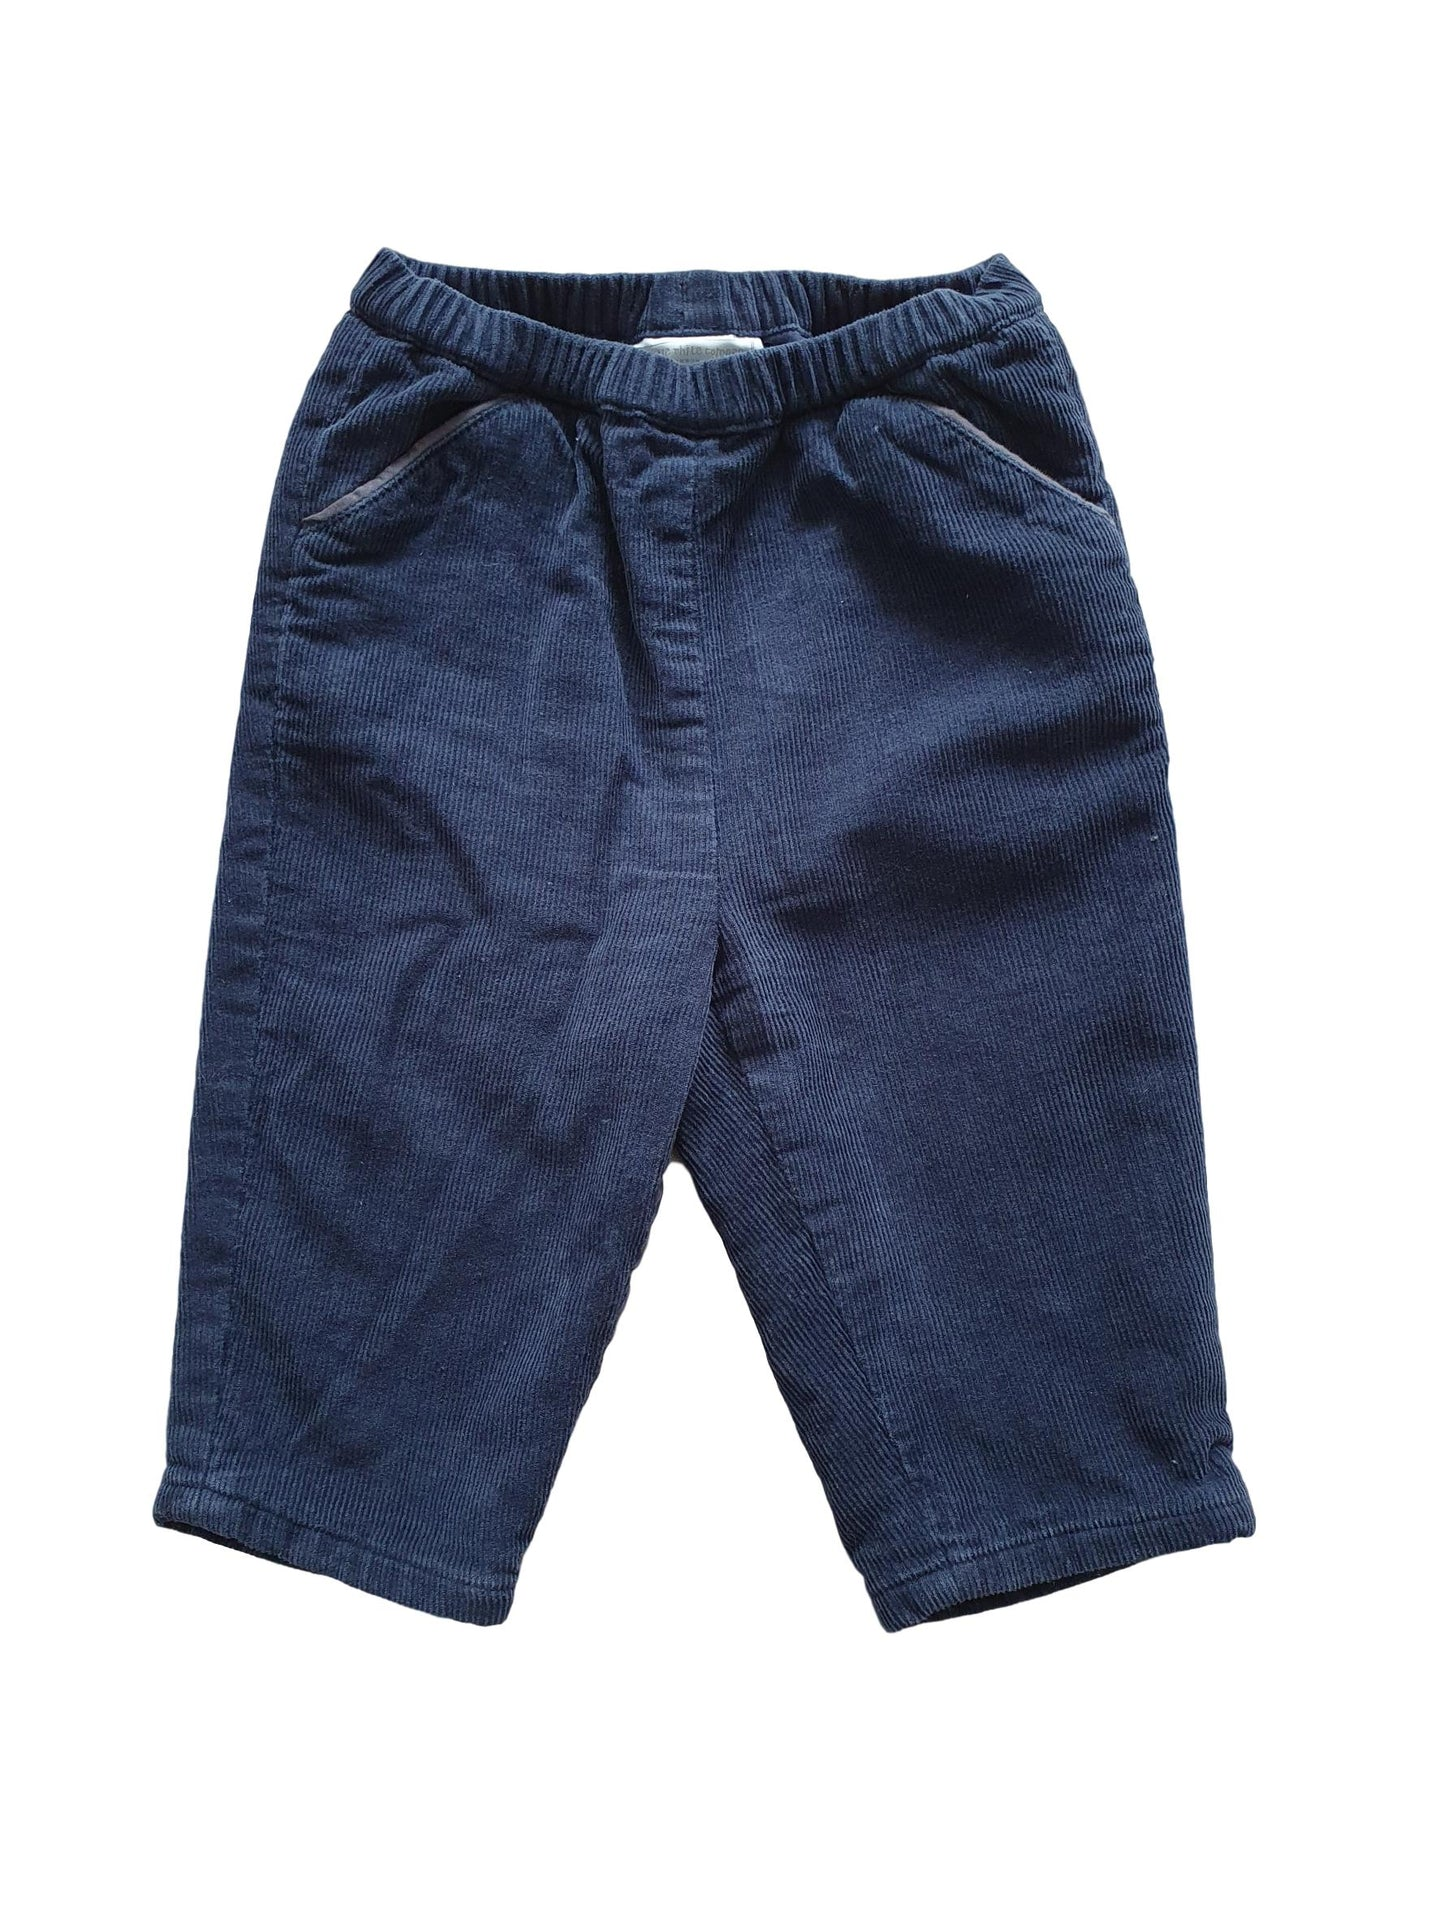 THE LITTLE WHITE COMPANY boy trousers 6-9m